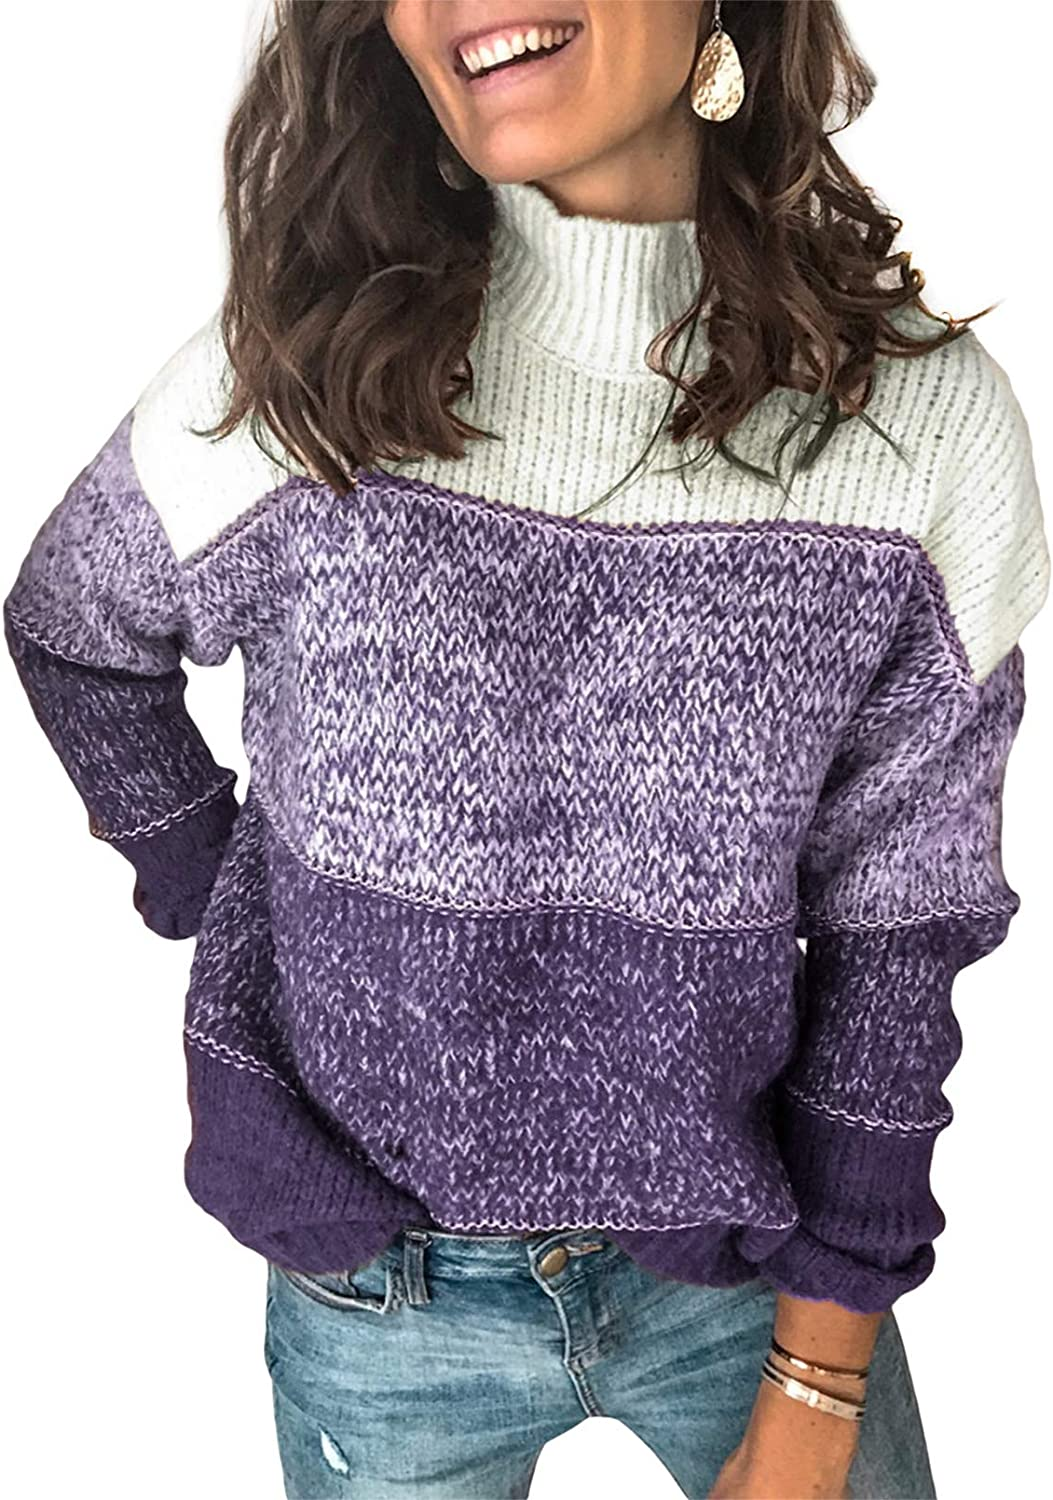 Lovezesent Womens Color Daily bargain sale Block Long Knit Oversized Ribbed Sleeve Chicago Mall